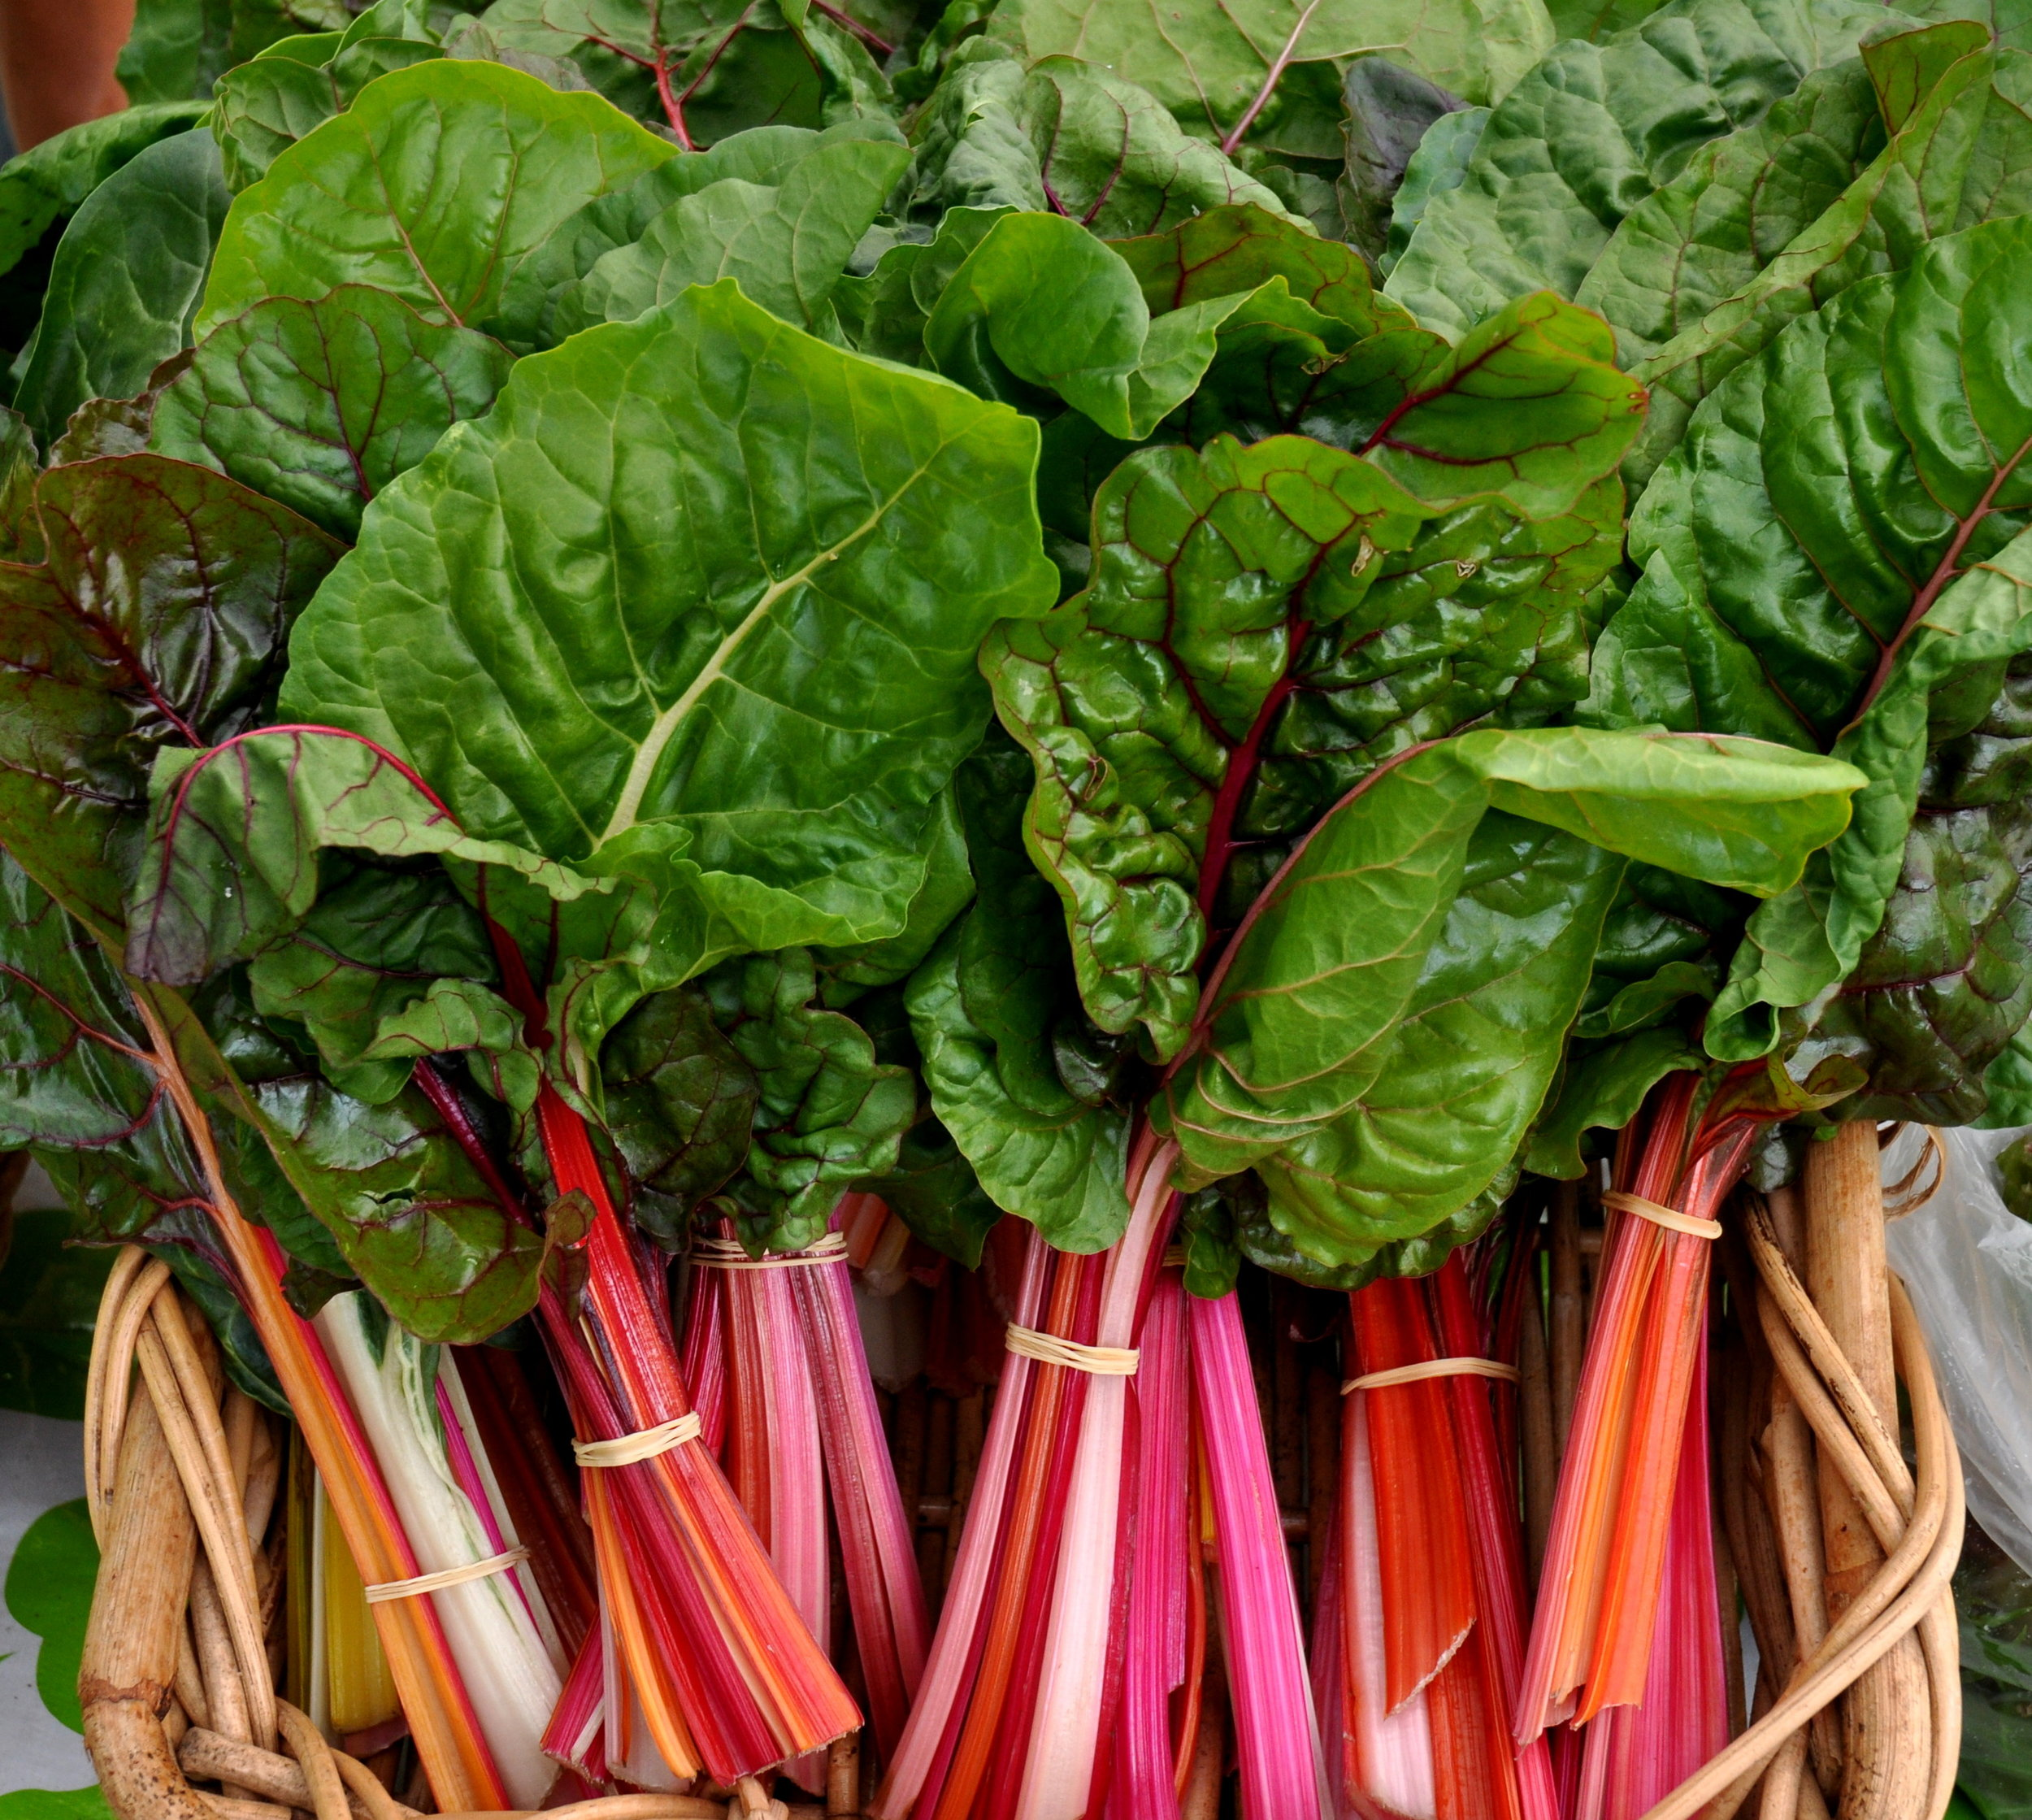 youthrainbowchard_16638805633_o.jpg